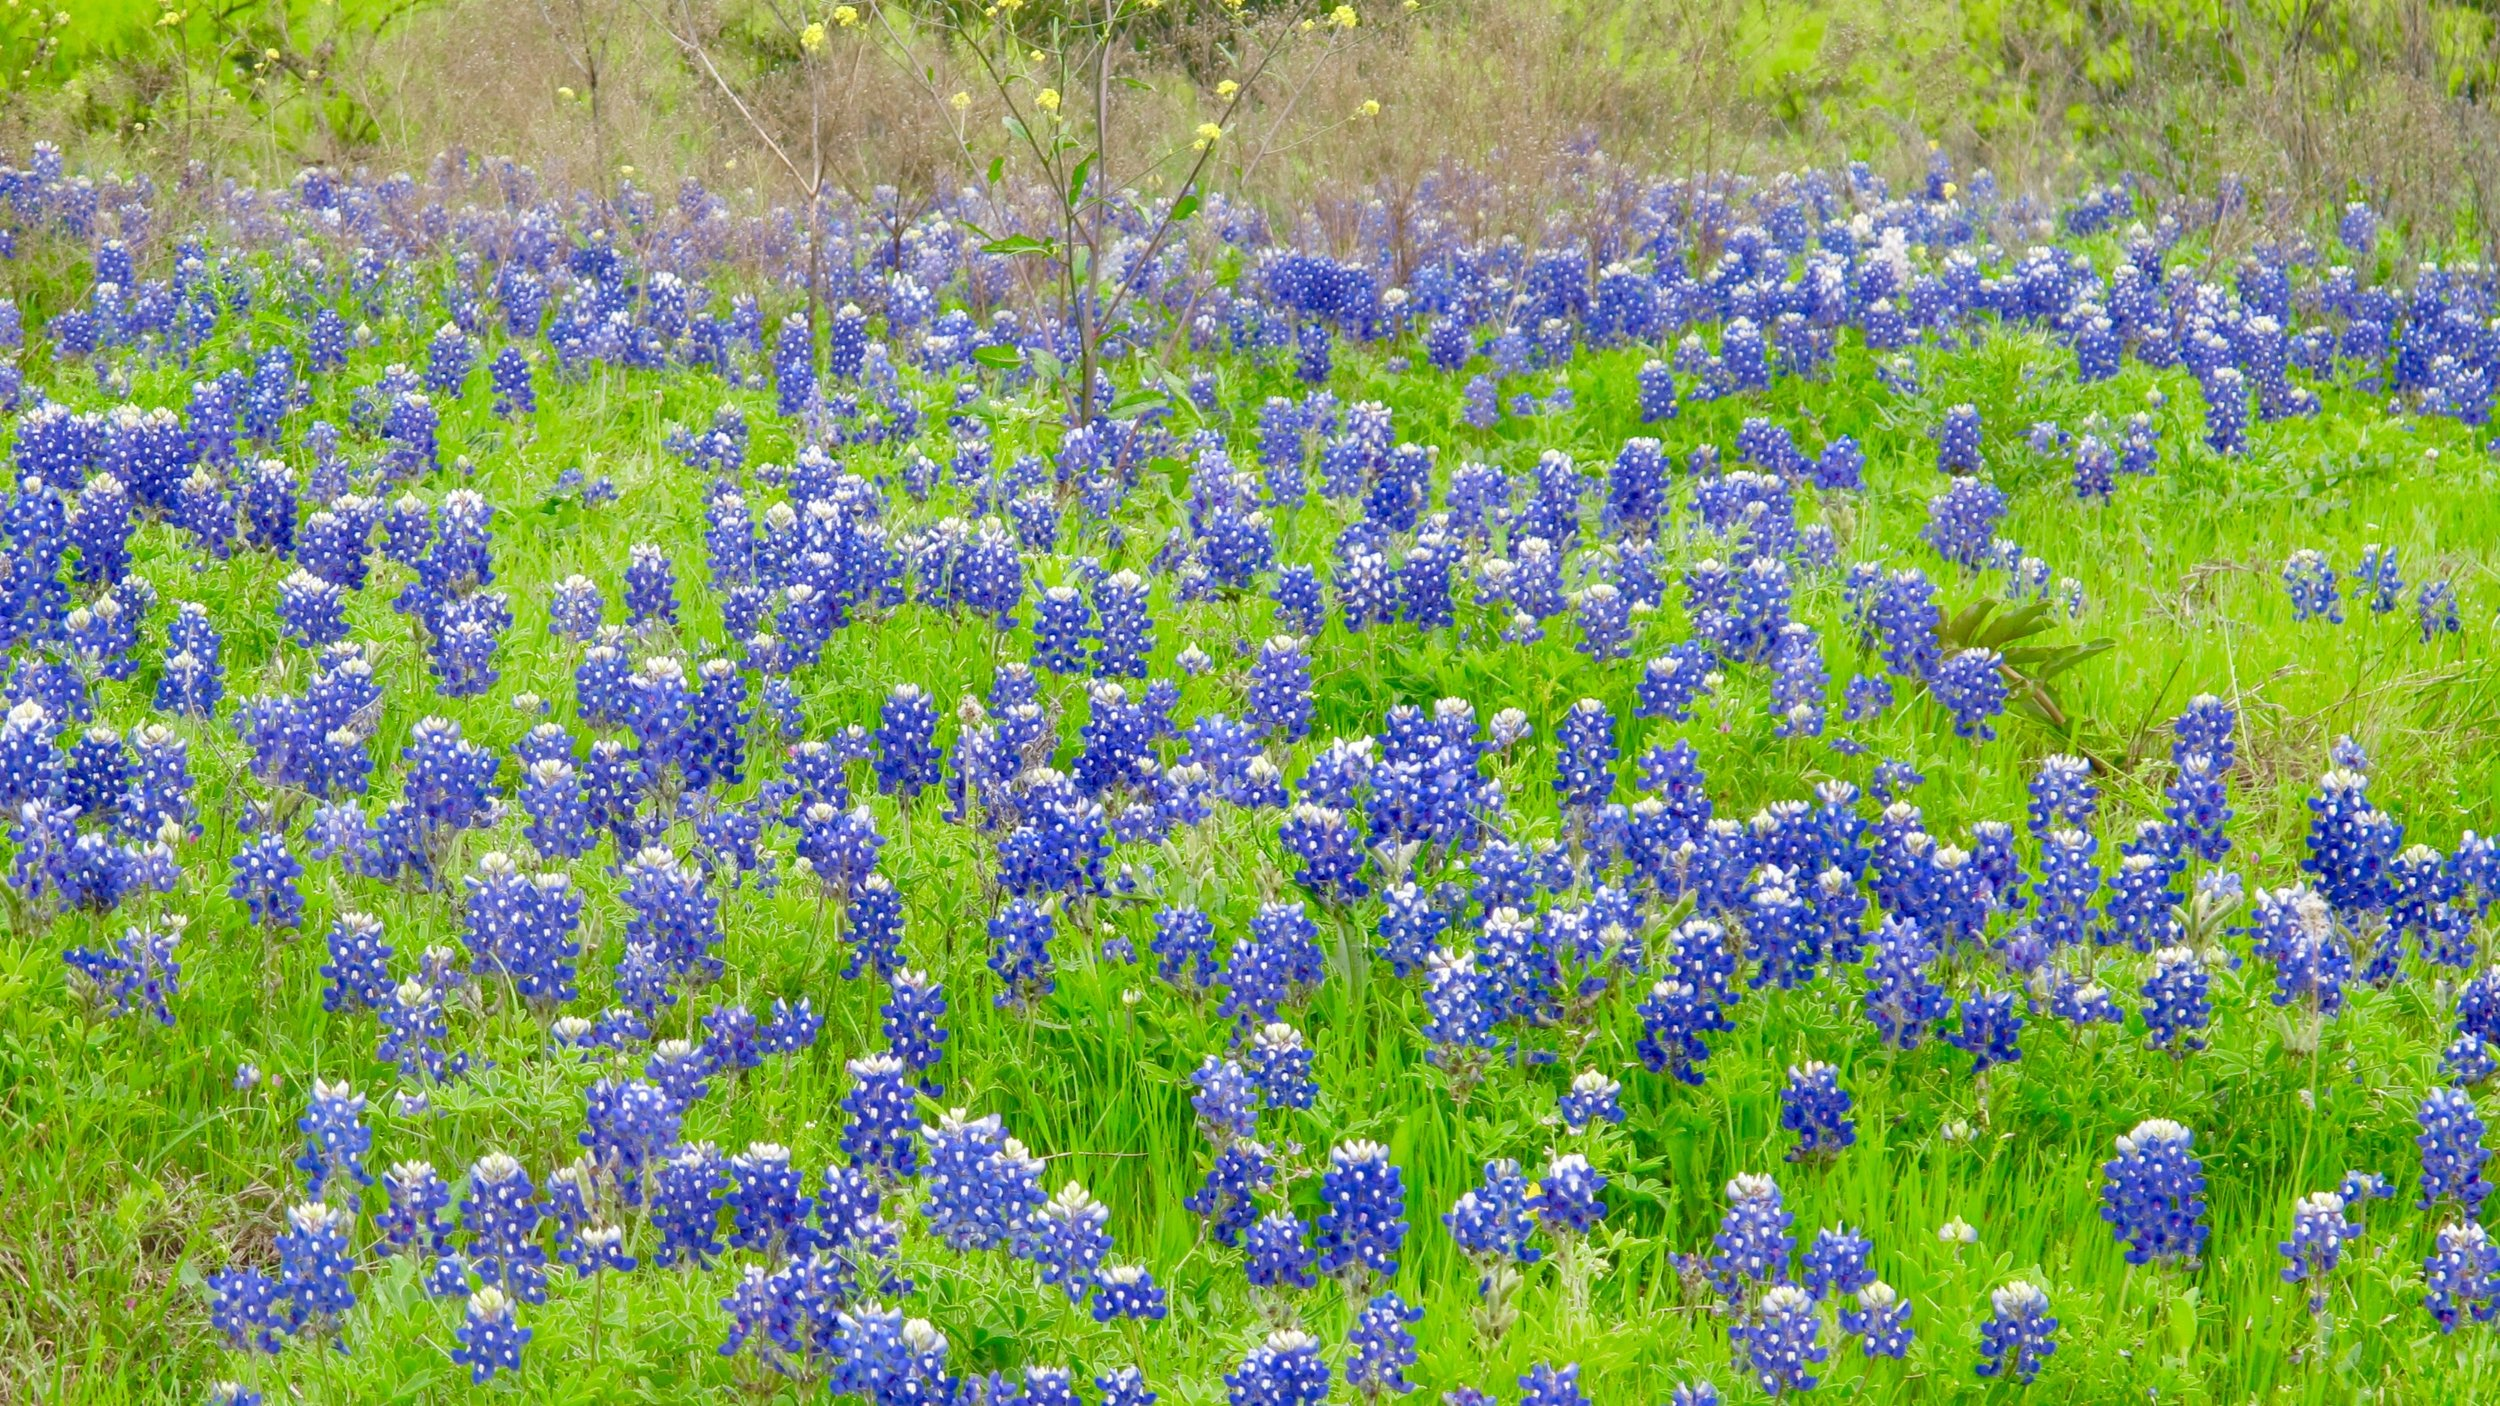 """Lupinus Texensis is the most common bluebonnet variety and is considered by most as THE Texas Bluebonnet. Note the distinctive white """"bunny tail"""" that tops the blooms."""